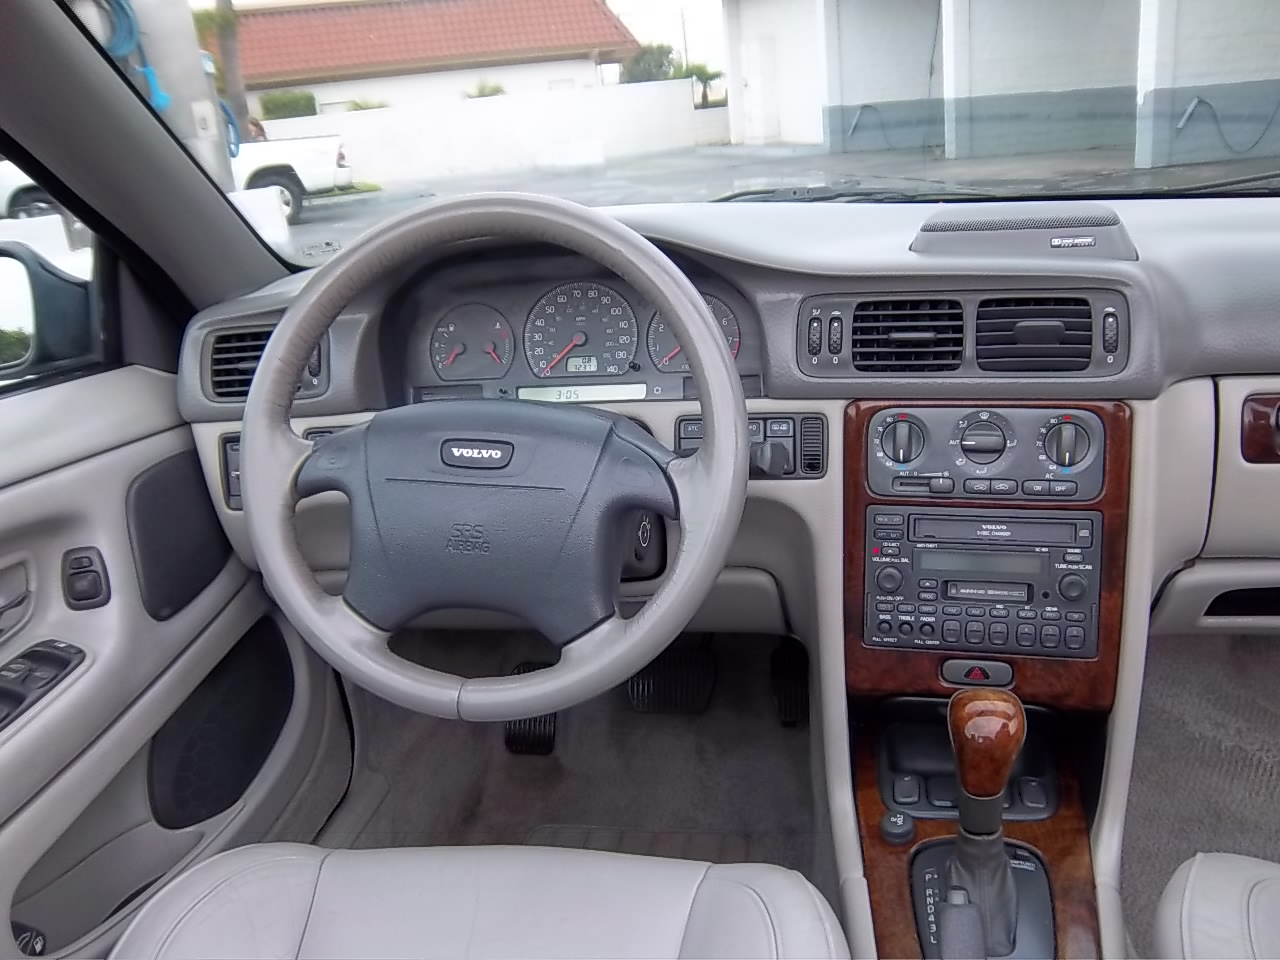 2002 Volvo C70 - Interior Pictures